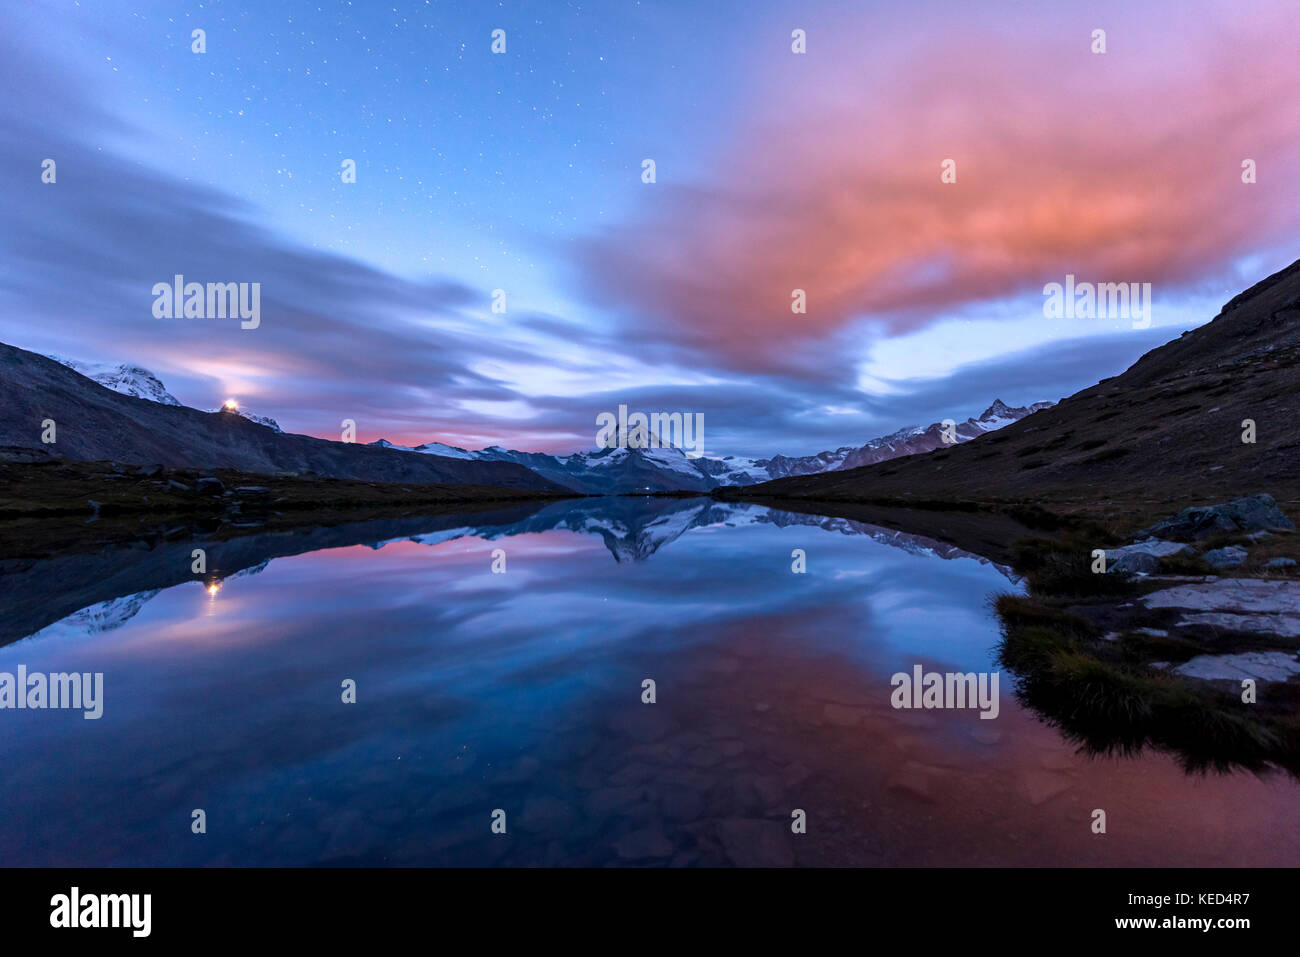 Night view, starry sky, snow-covered Matterhorn reflected in the Sellisee, Valais, Switzerland - Stock Image